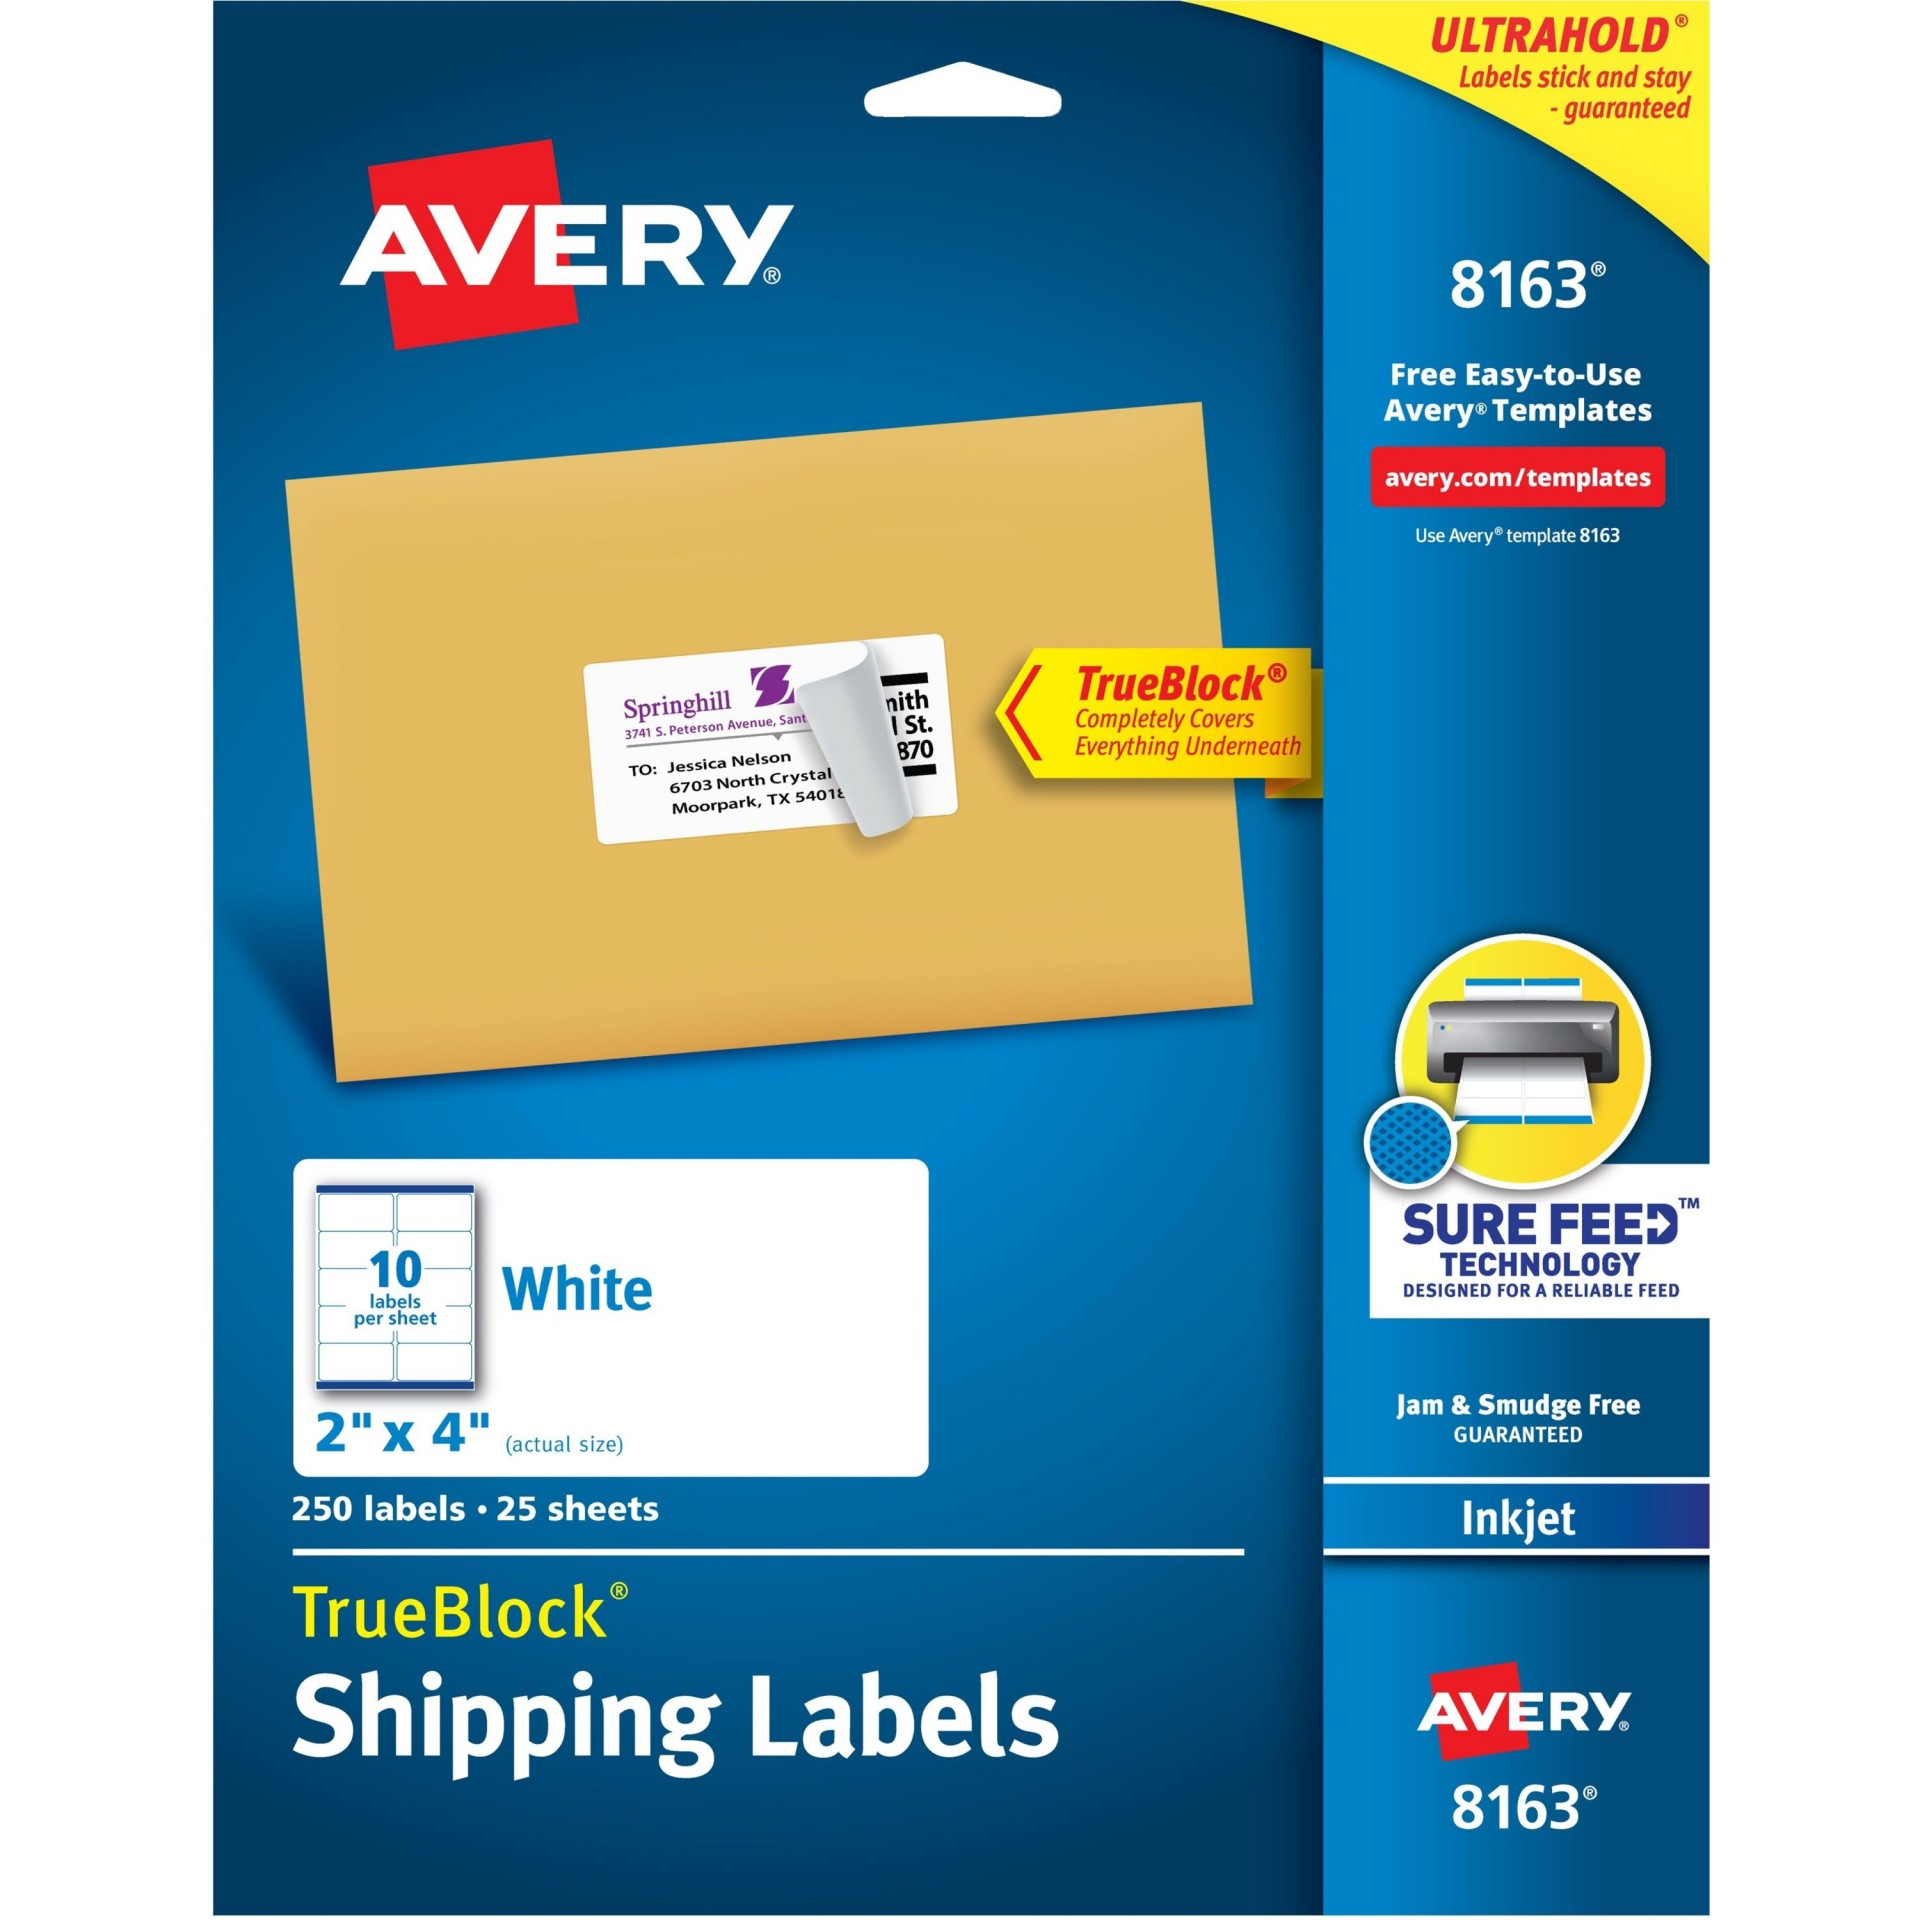 002 Marvelou Free Avery Addres Label Template For Mac High Definition  51601920